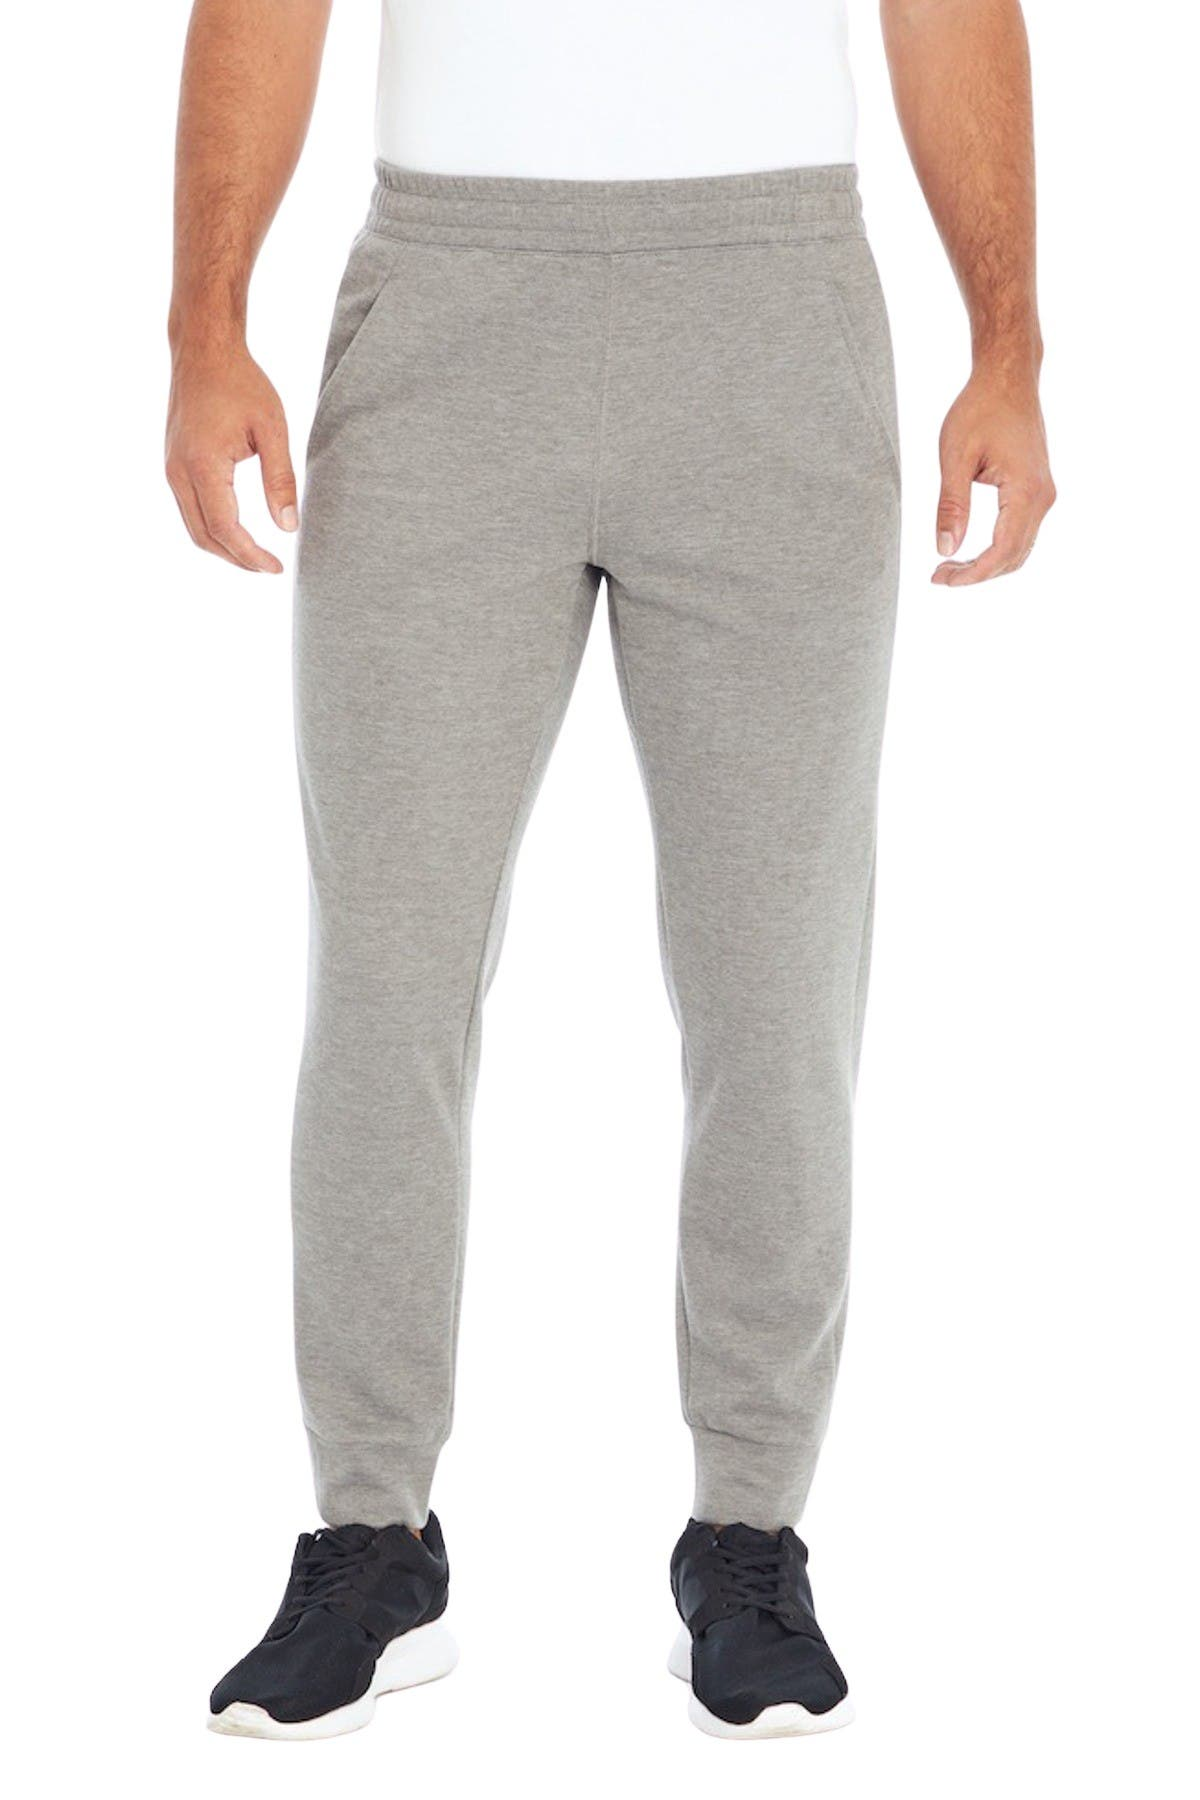 Image of The Balance Collection Arlo Double Knit Joggers